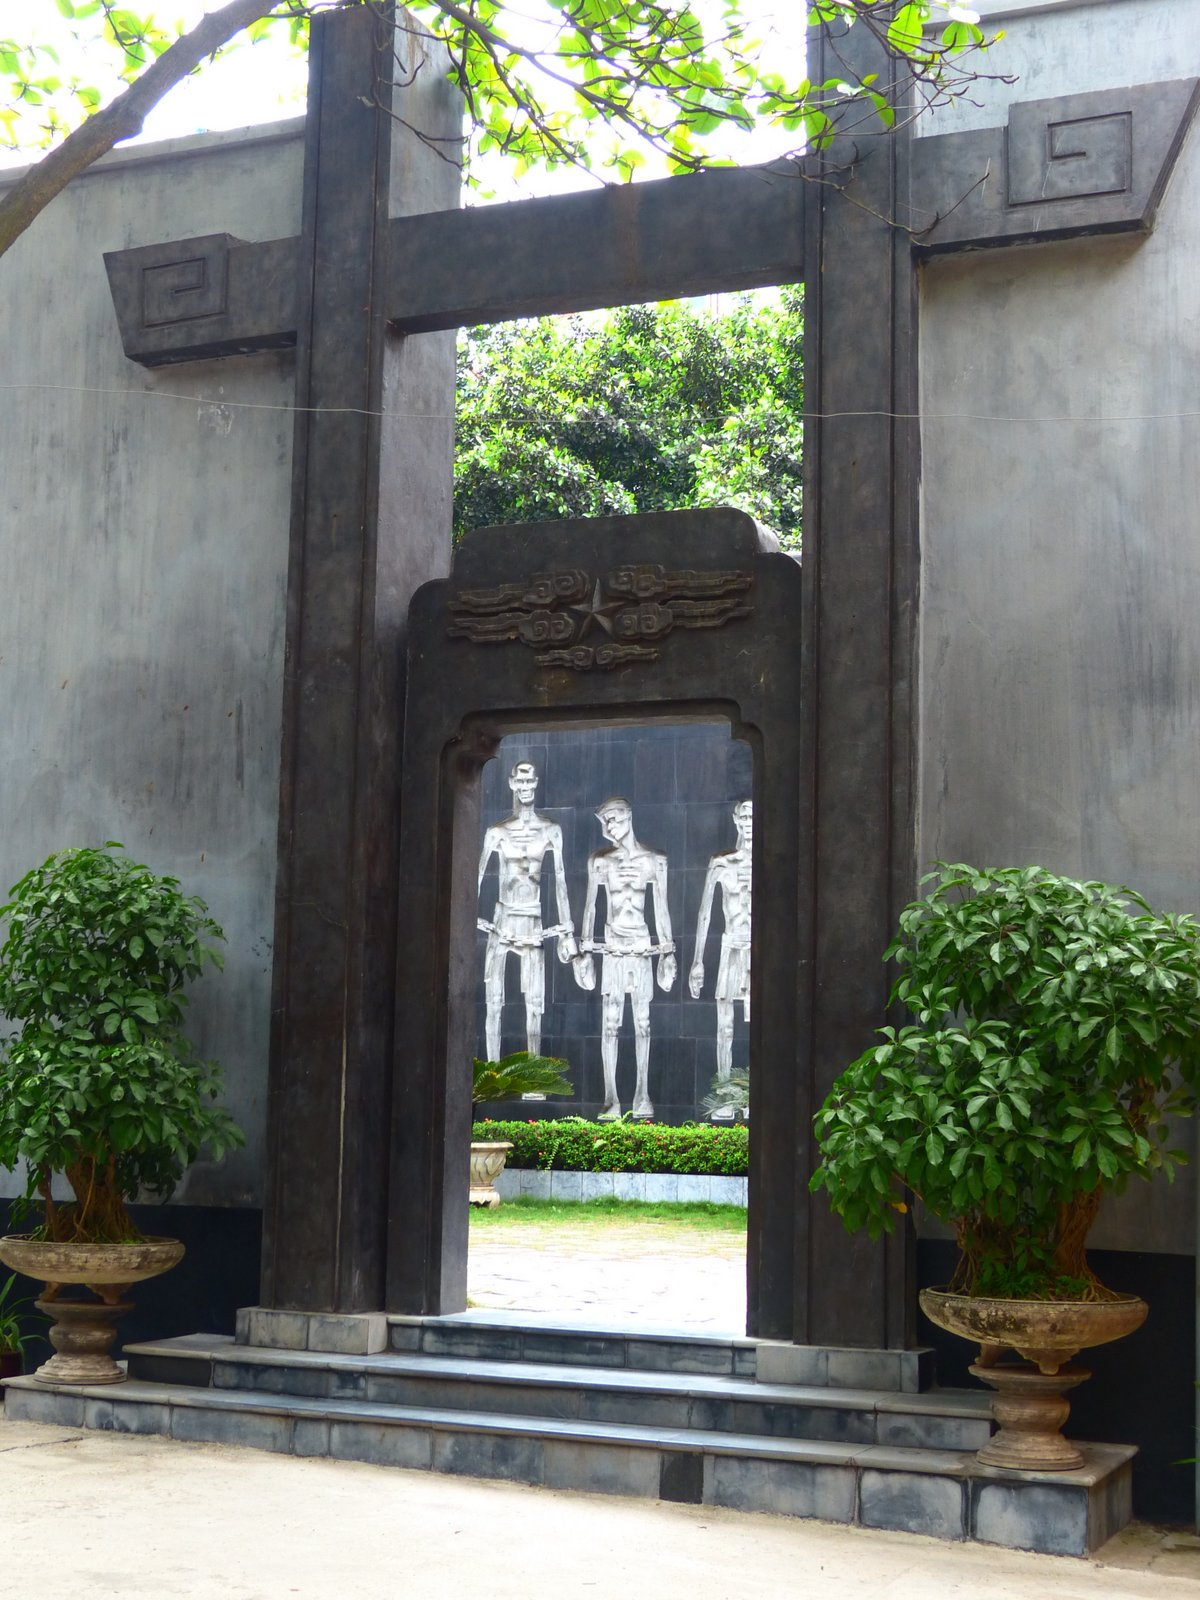 Peek at the memorial at Hoa Lo Prison, site of many French atrocities towards the Vietnamese people and now a museum and memorial.